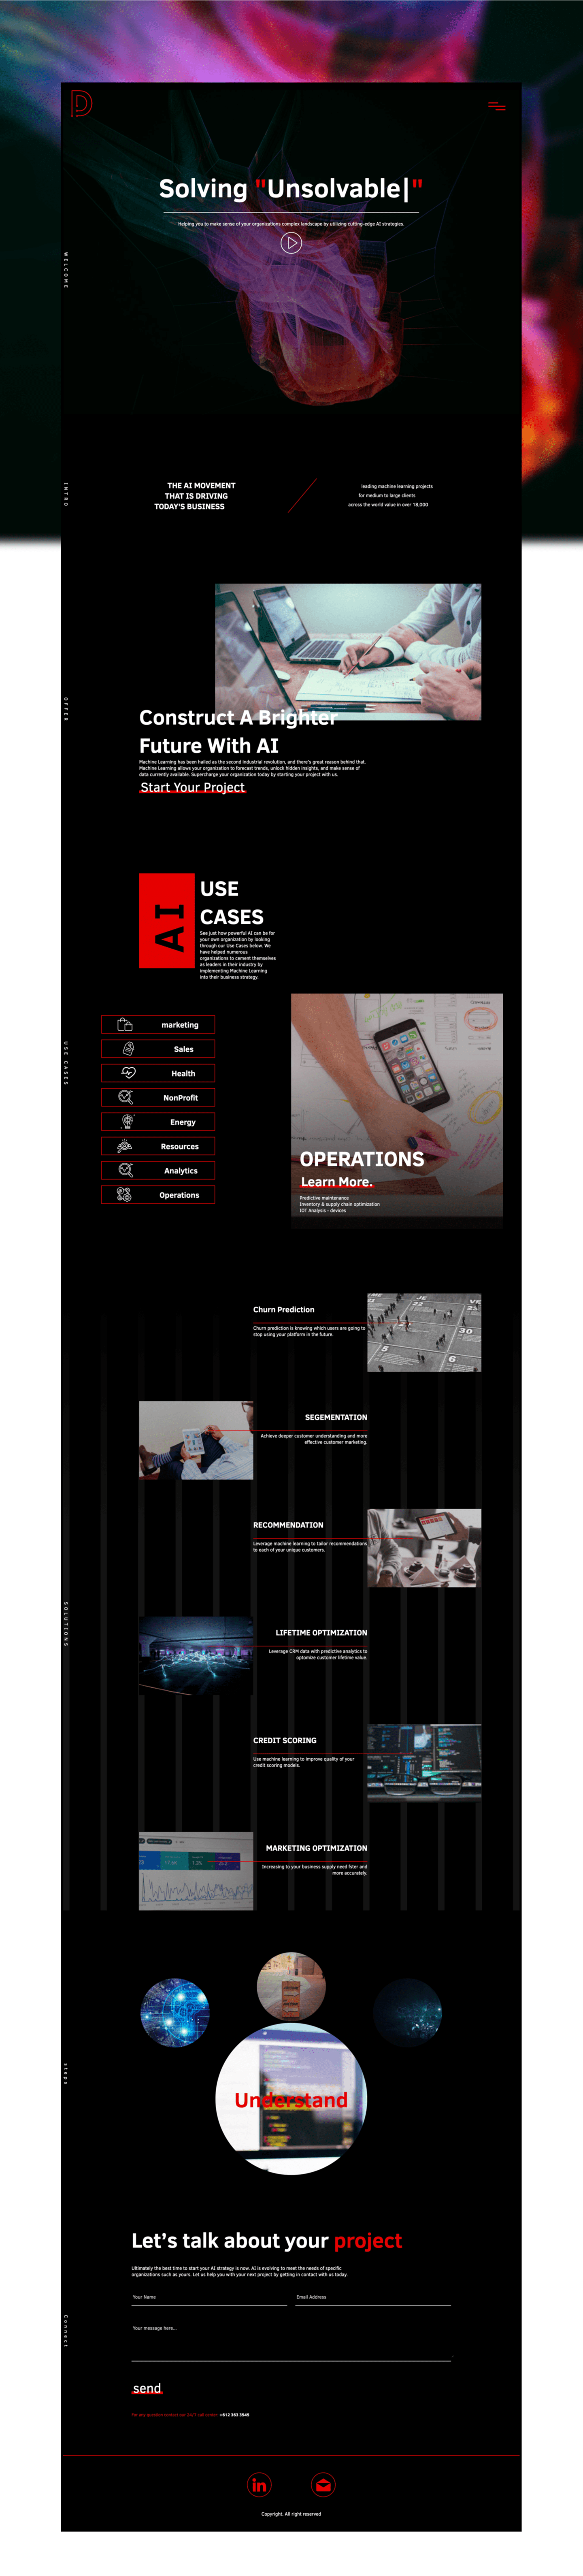 Full Height image of the Website home-page.